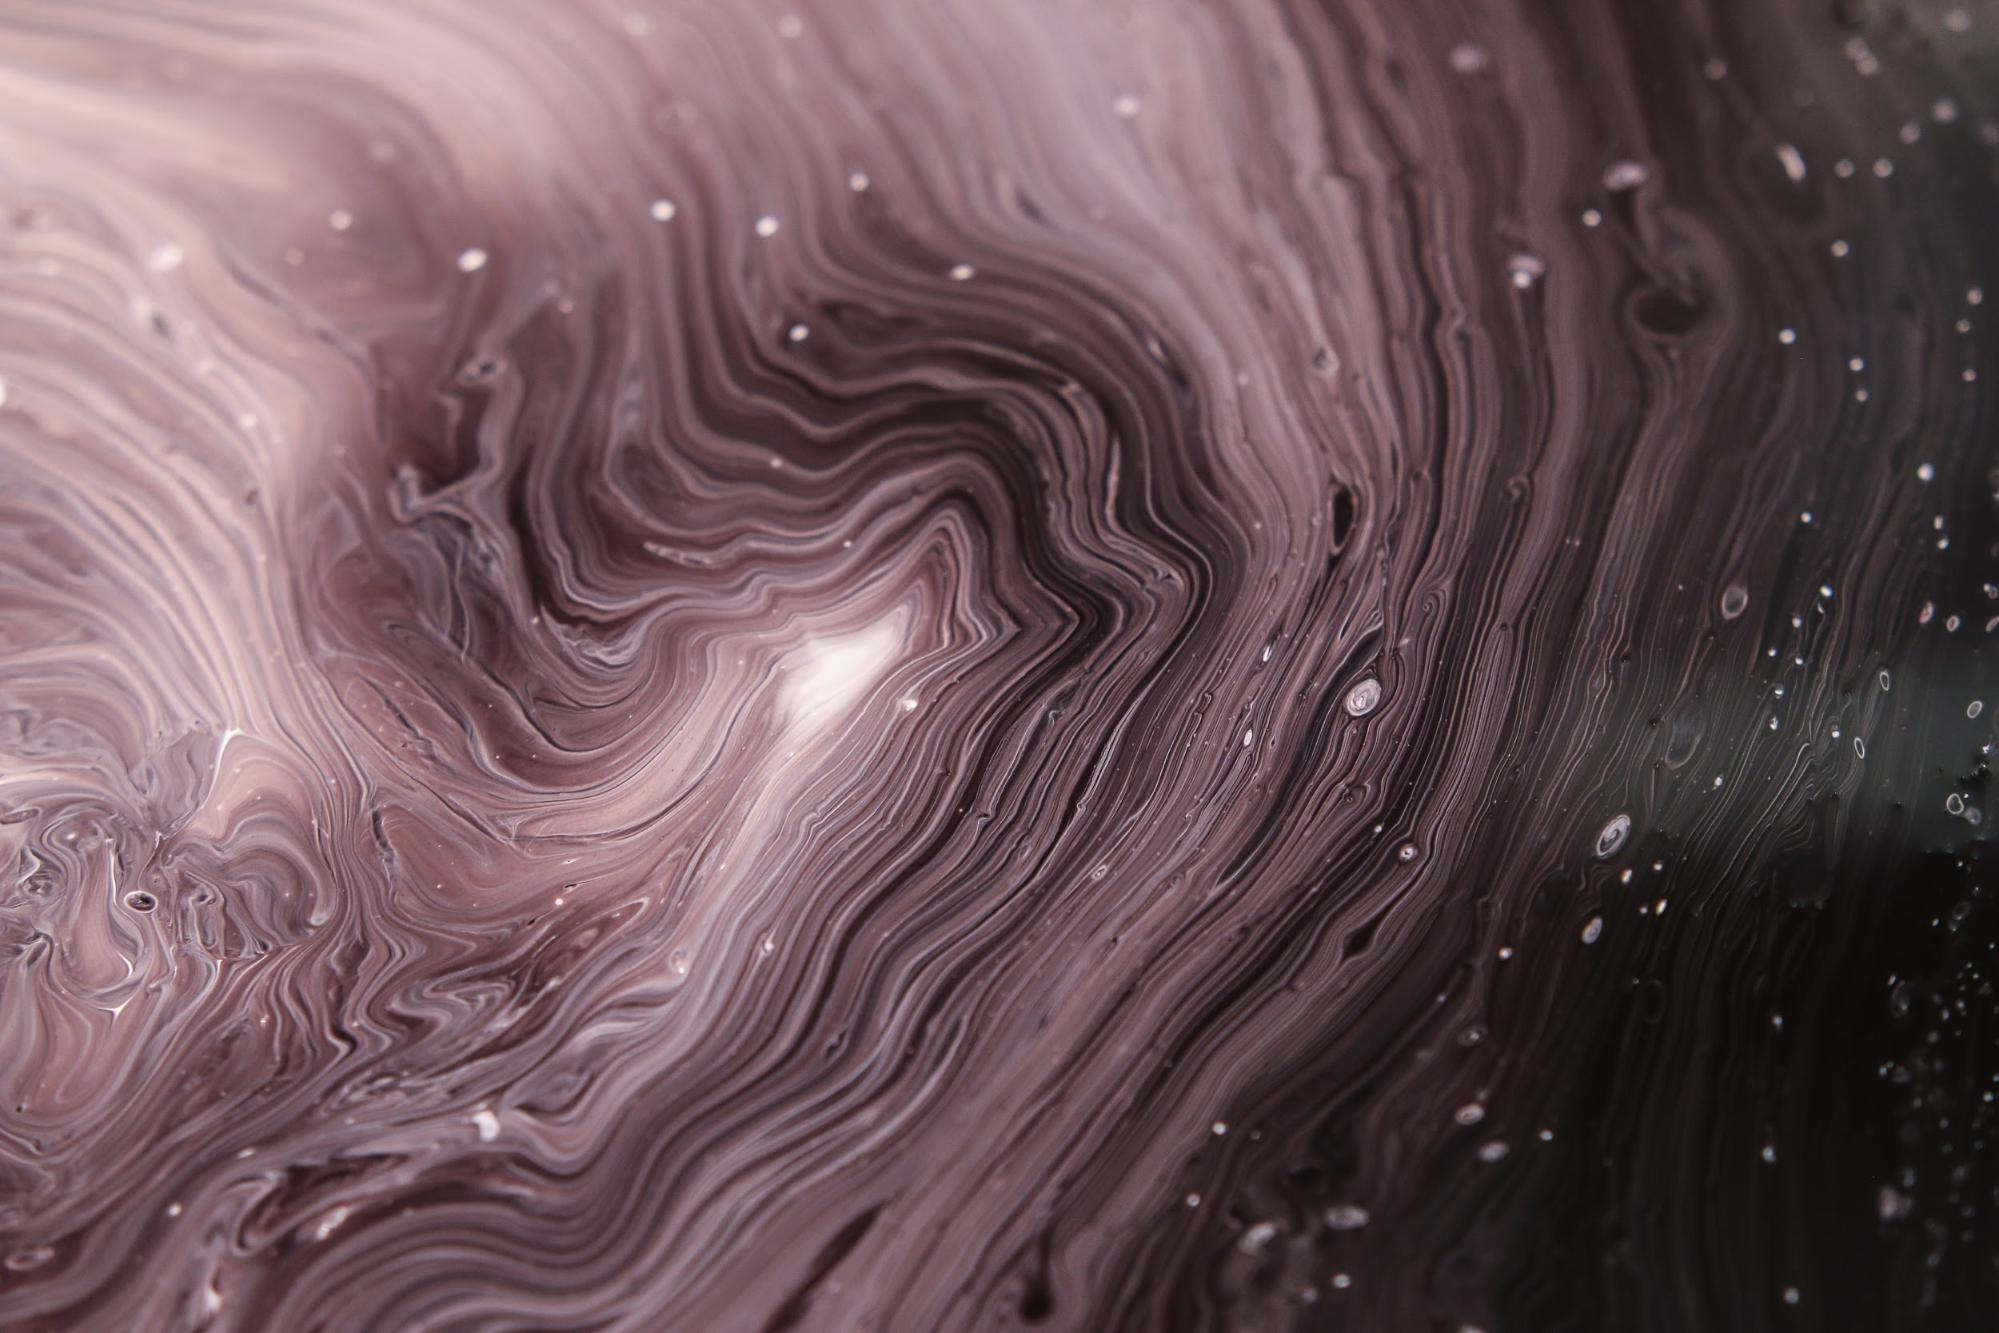 Fluid Art Tutorial: How to Do Acrylic Pouring - image3